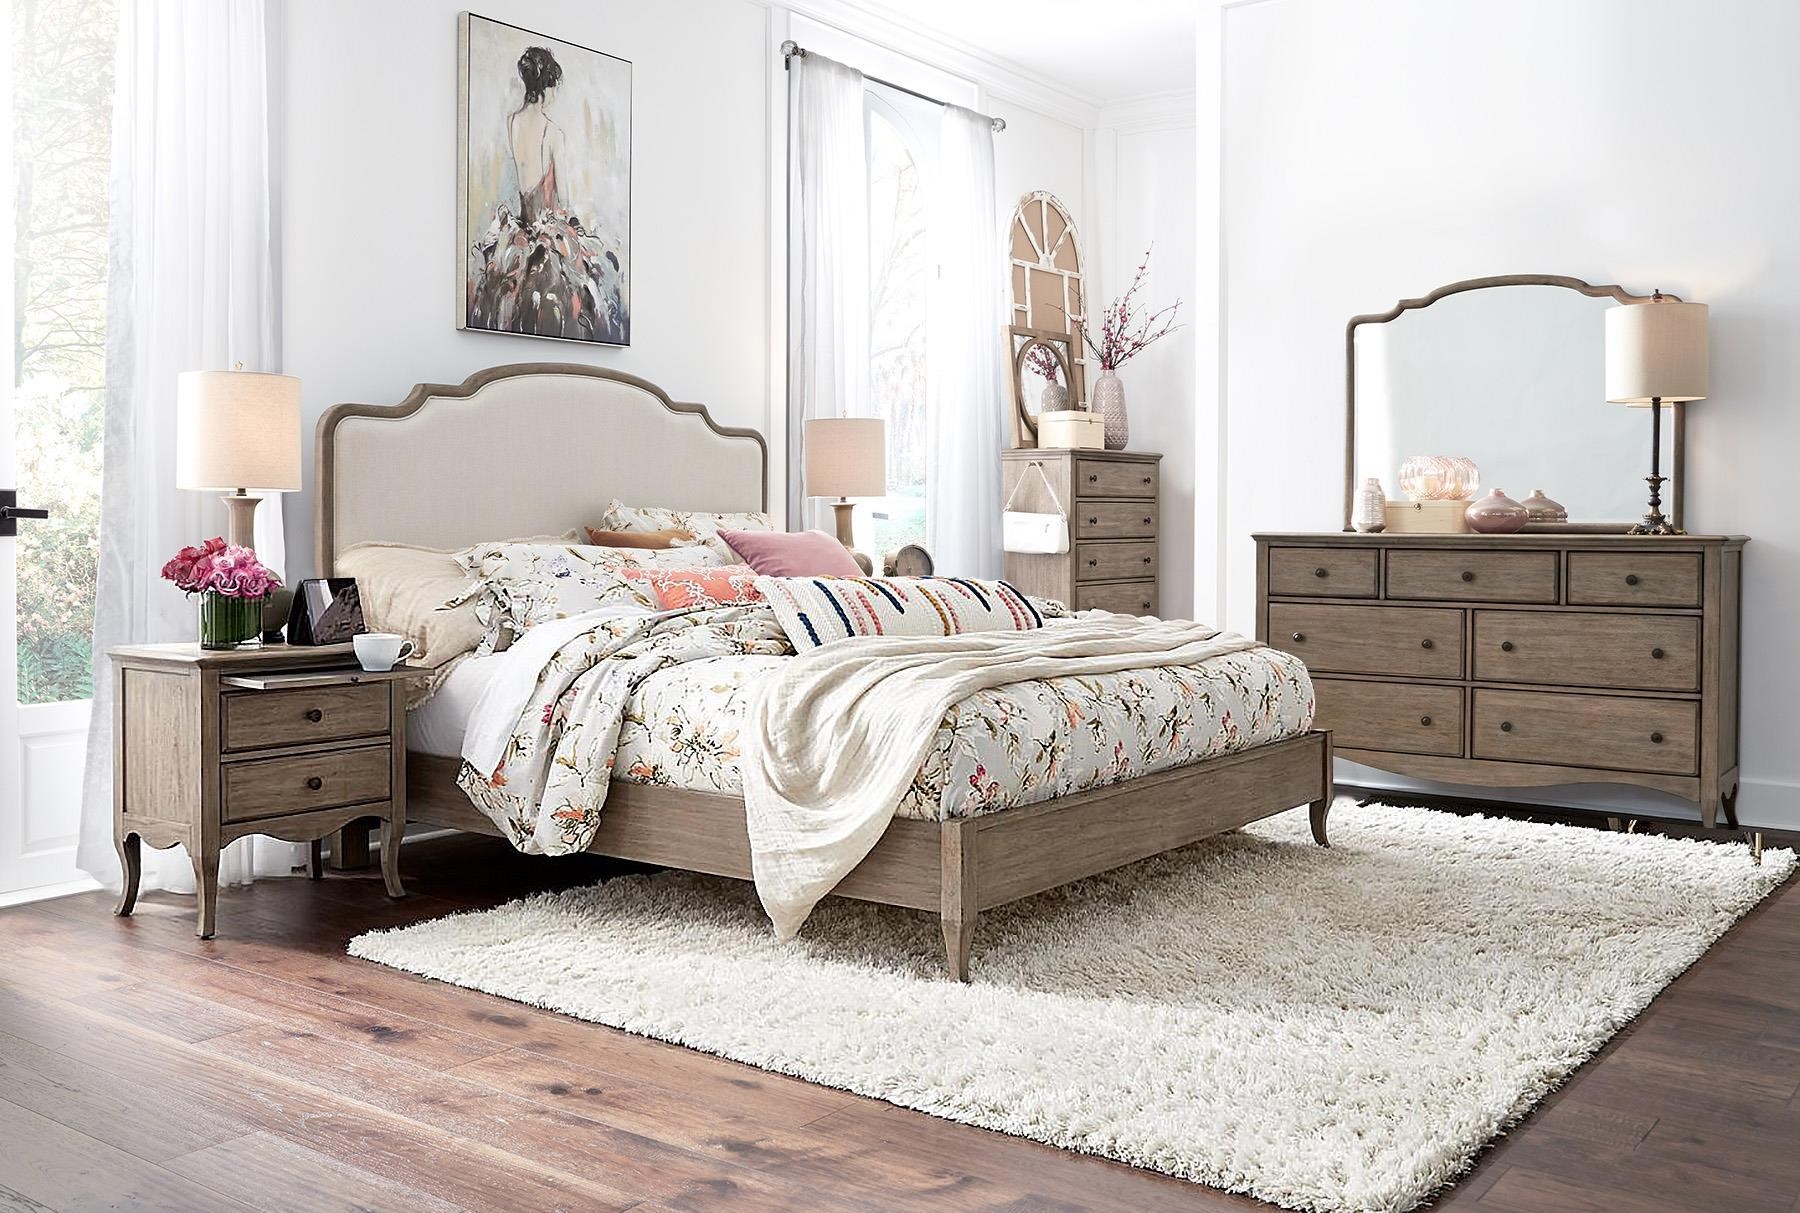 Queen Bedroom Group at Sadler's Home Furnishings